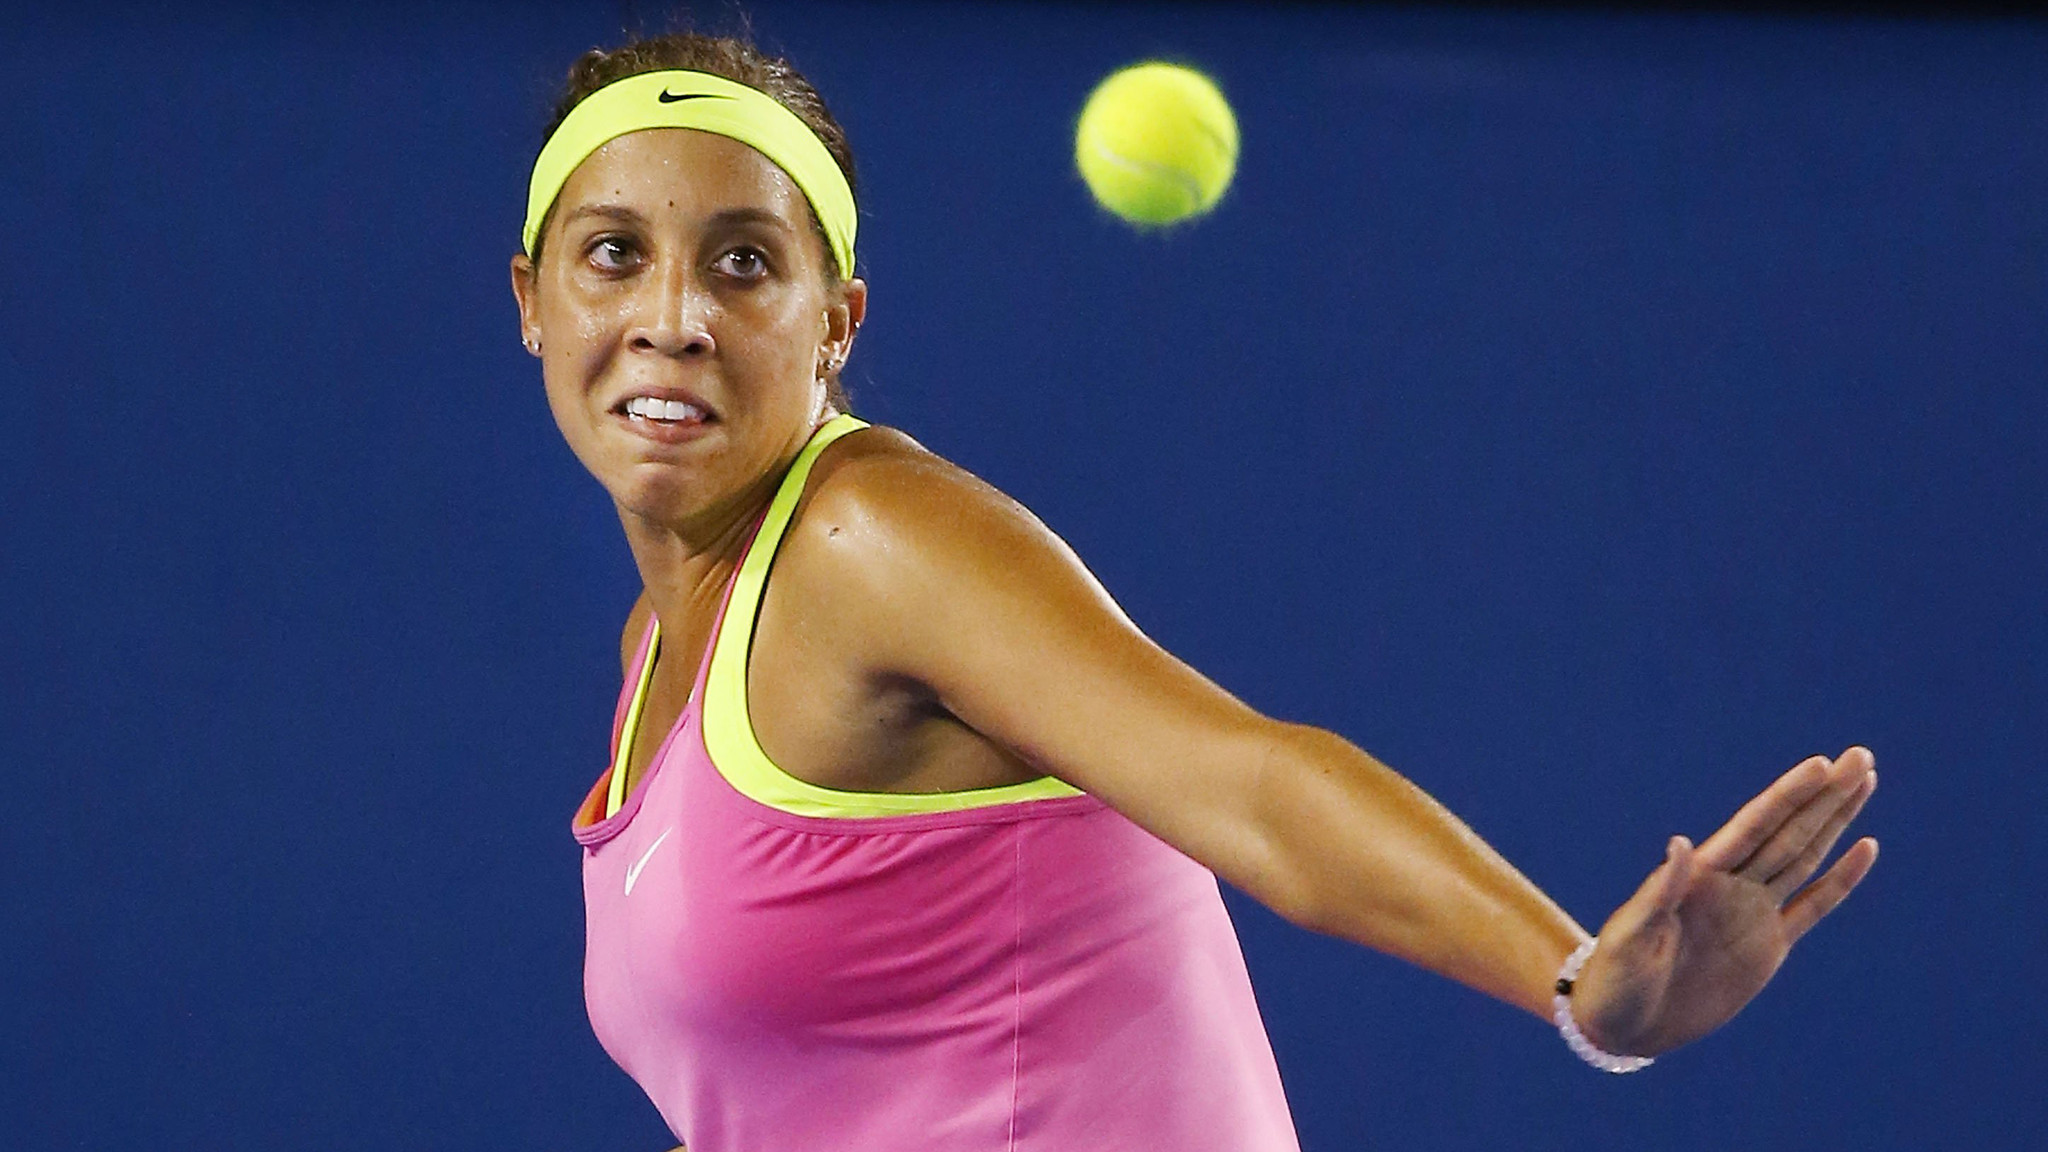 American Madison Keys upsets No. 4 Petra Kvitova at Australian Open - LA Times